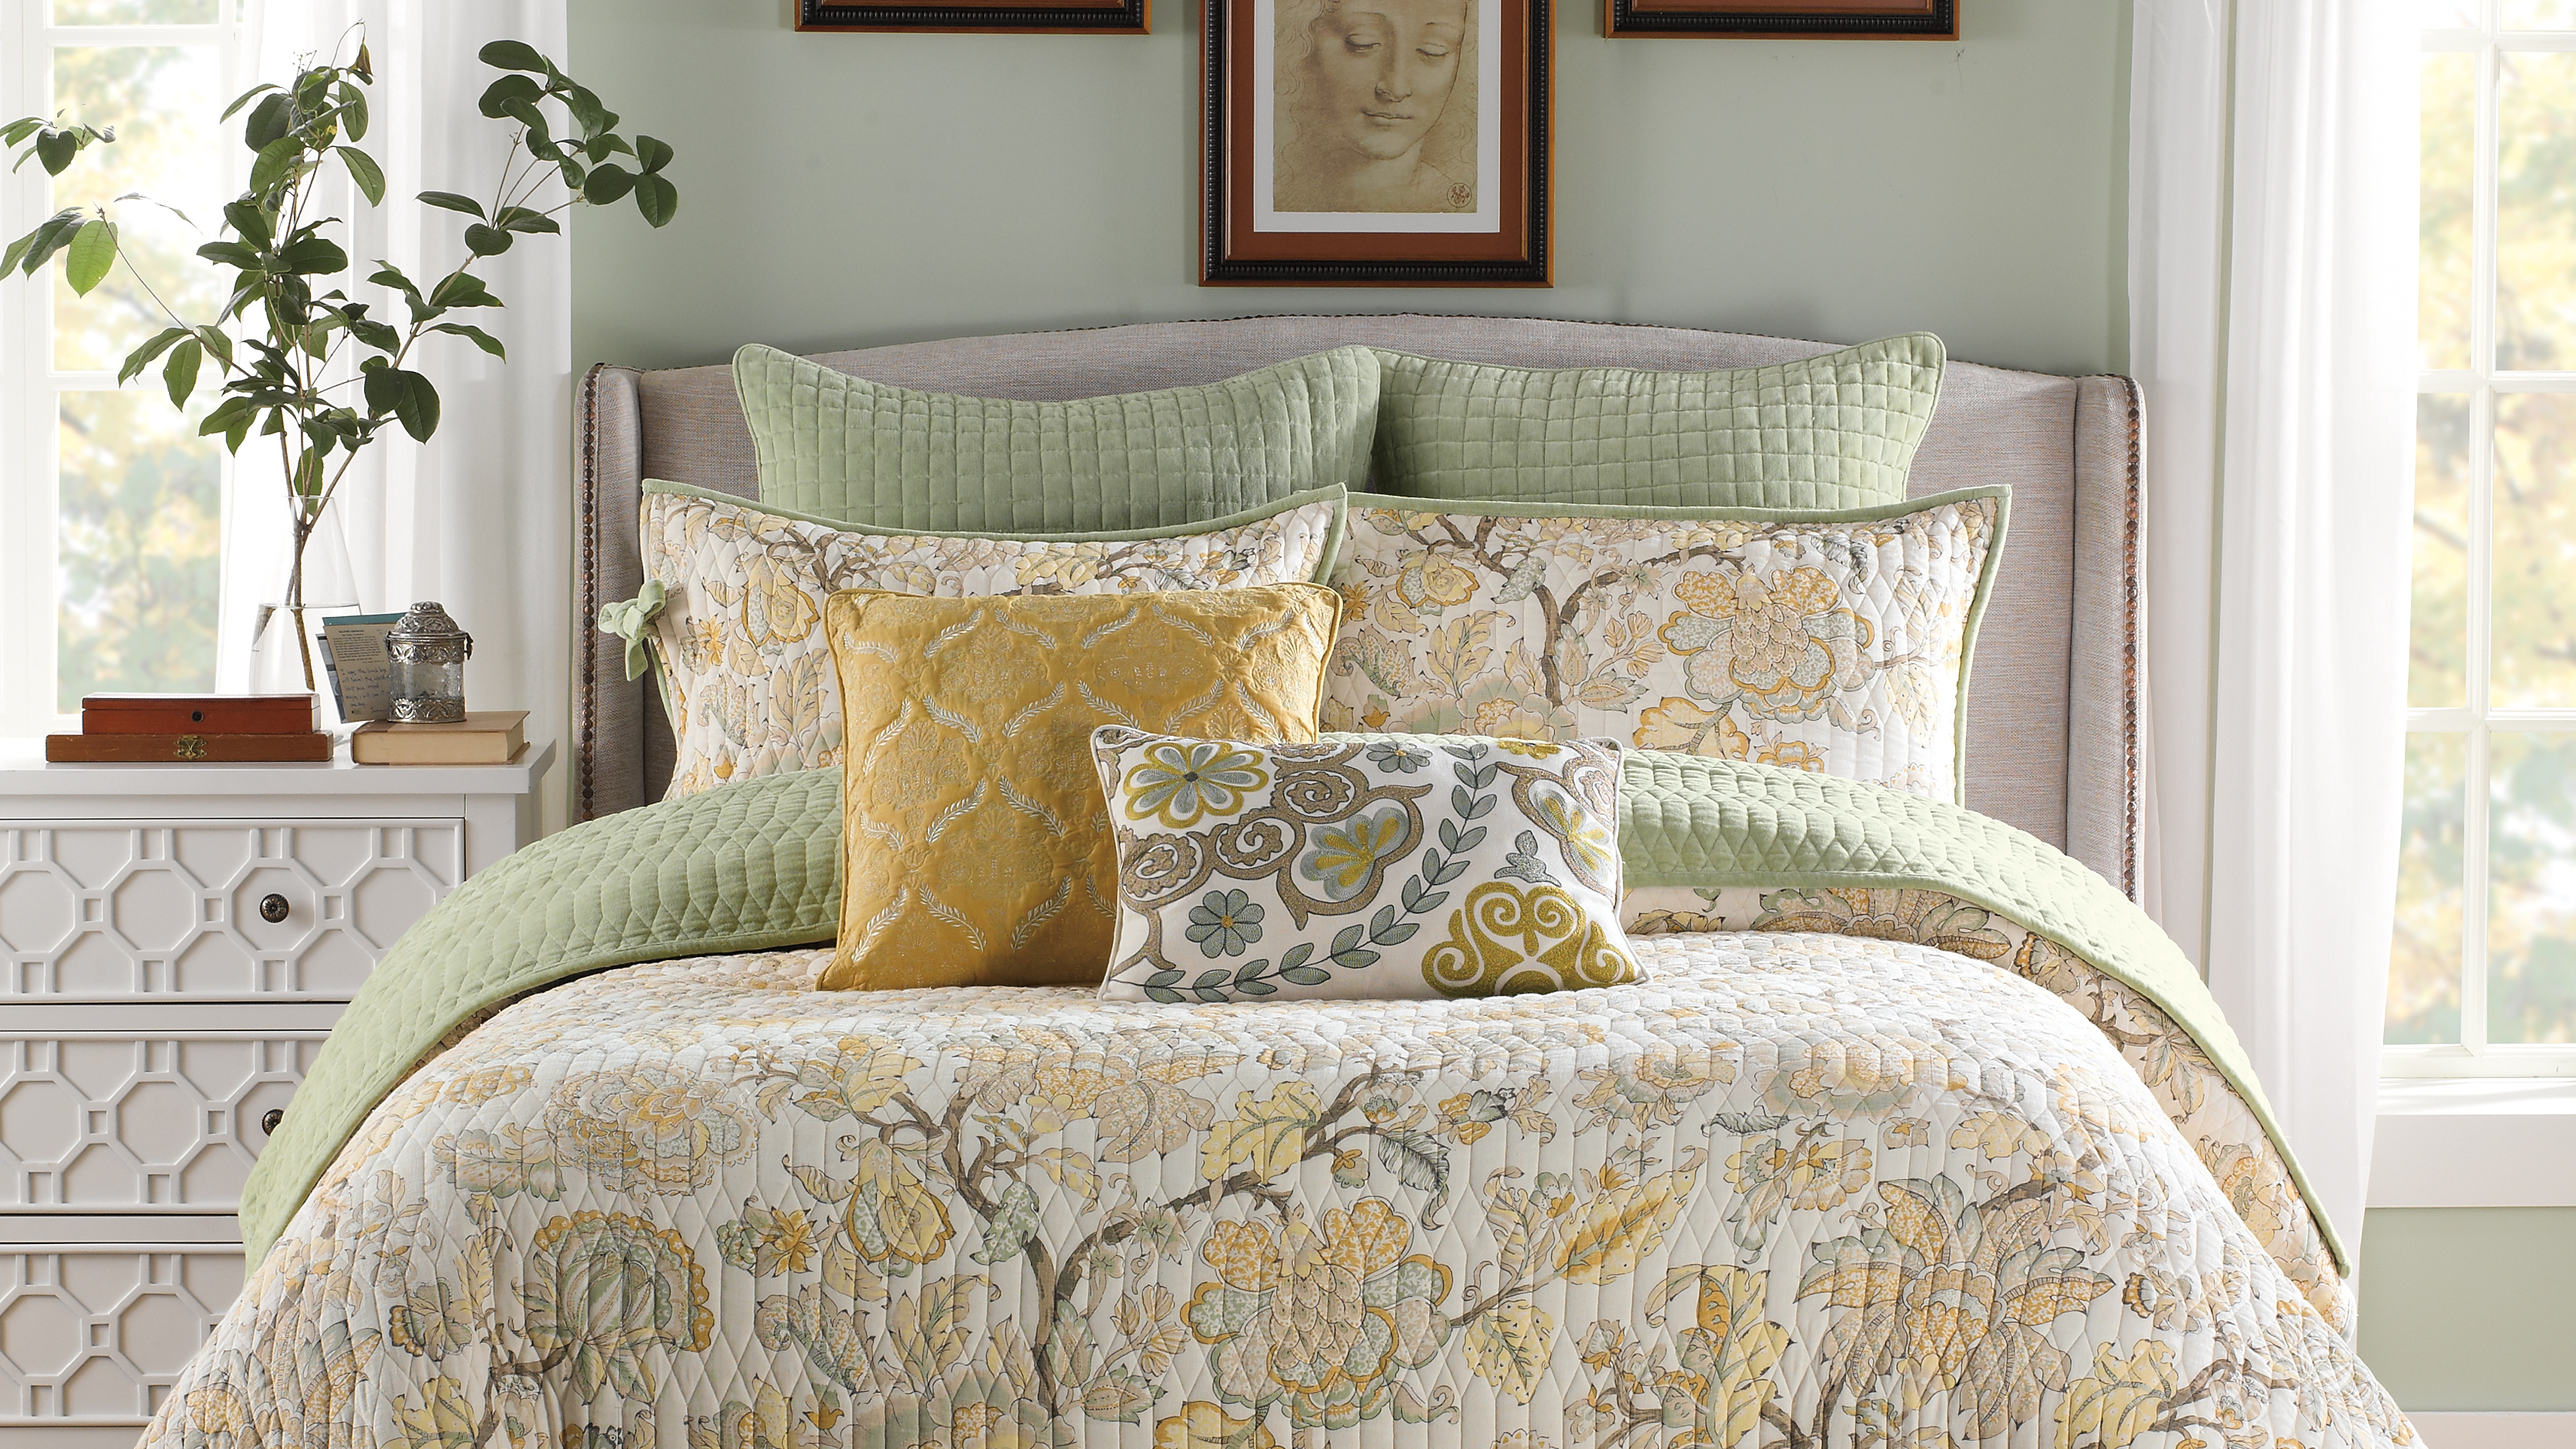 Britannica home fashions tencel sheets - Britannica Home Fashions Inc Has Been A Leading Force In The Home Textile Industry For Over 40 Years Headquartered In The Heart Of New York City S